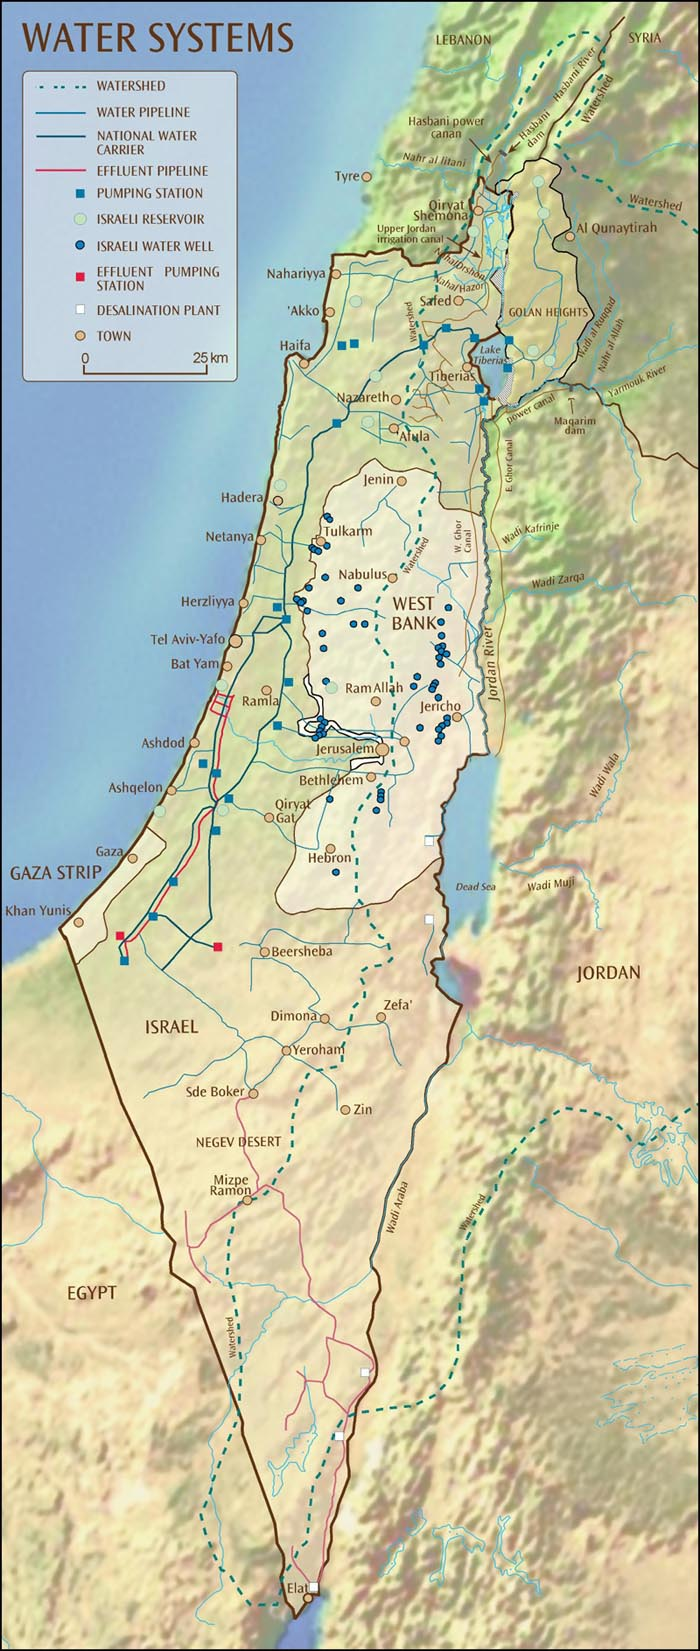 The Middle East - Maps - Israel\'s Water Systems